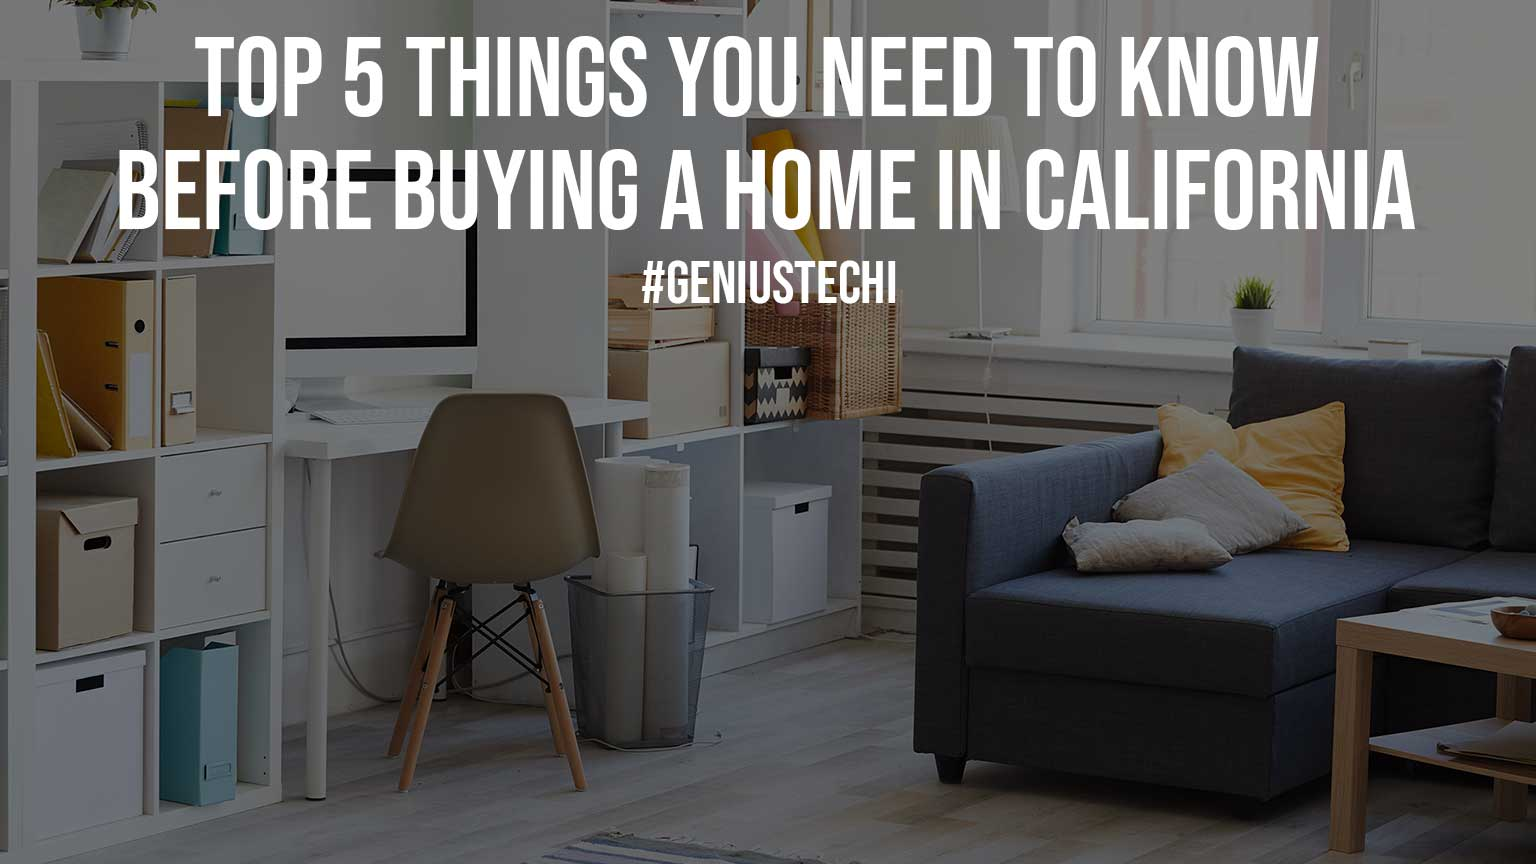 Top 5 Things You Need to Know Before Buying a Home in California